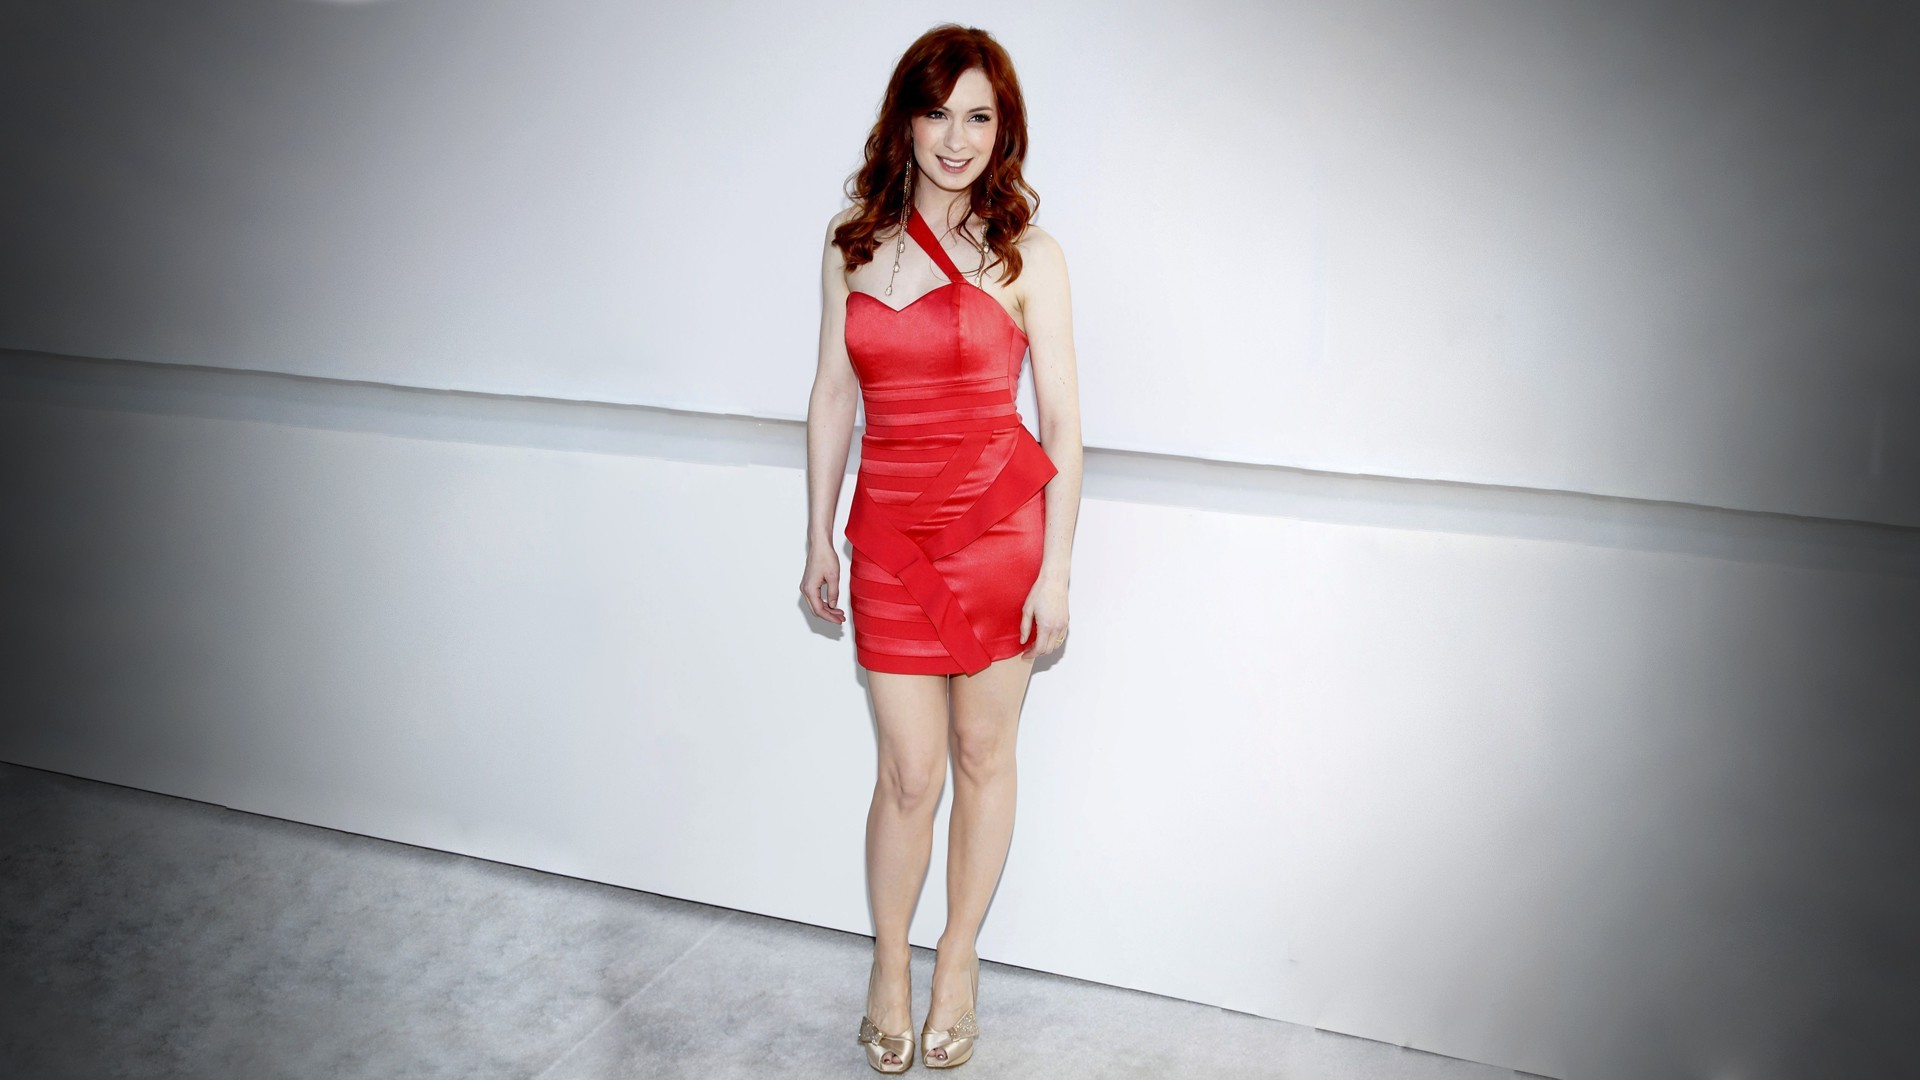 Felicia Day Background